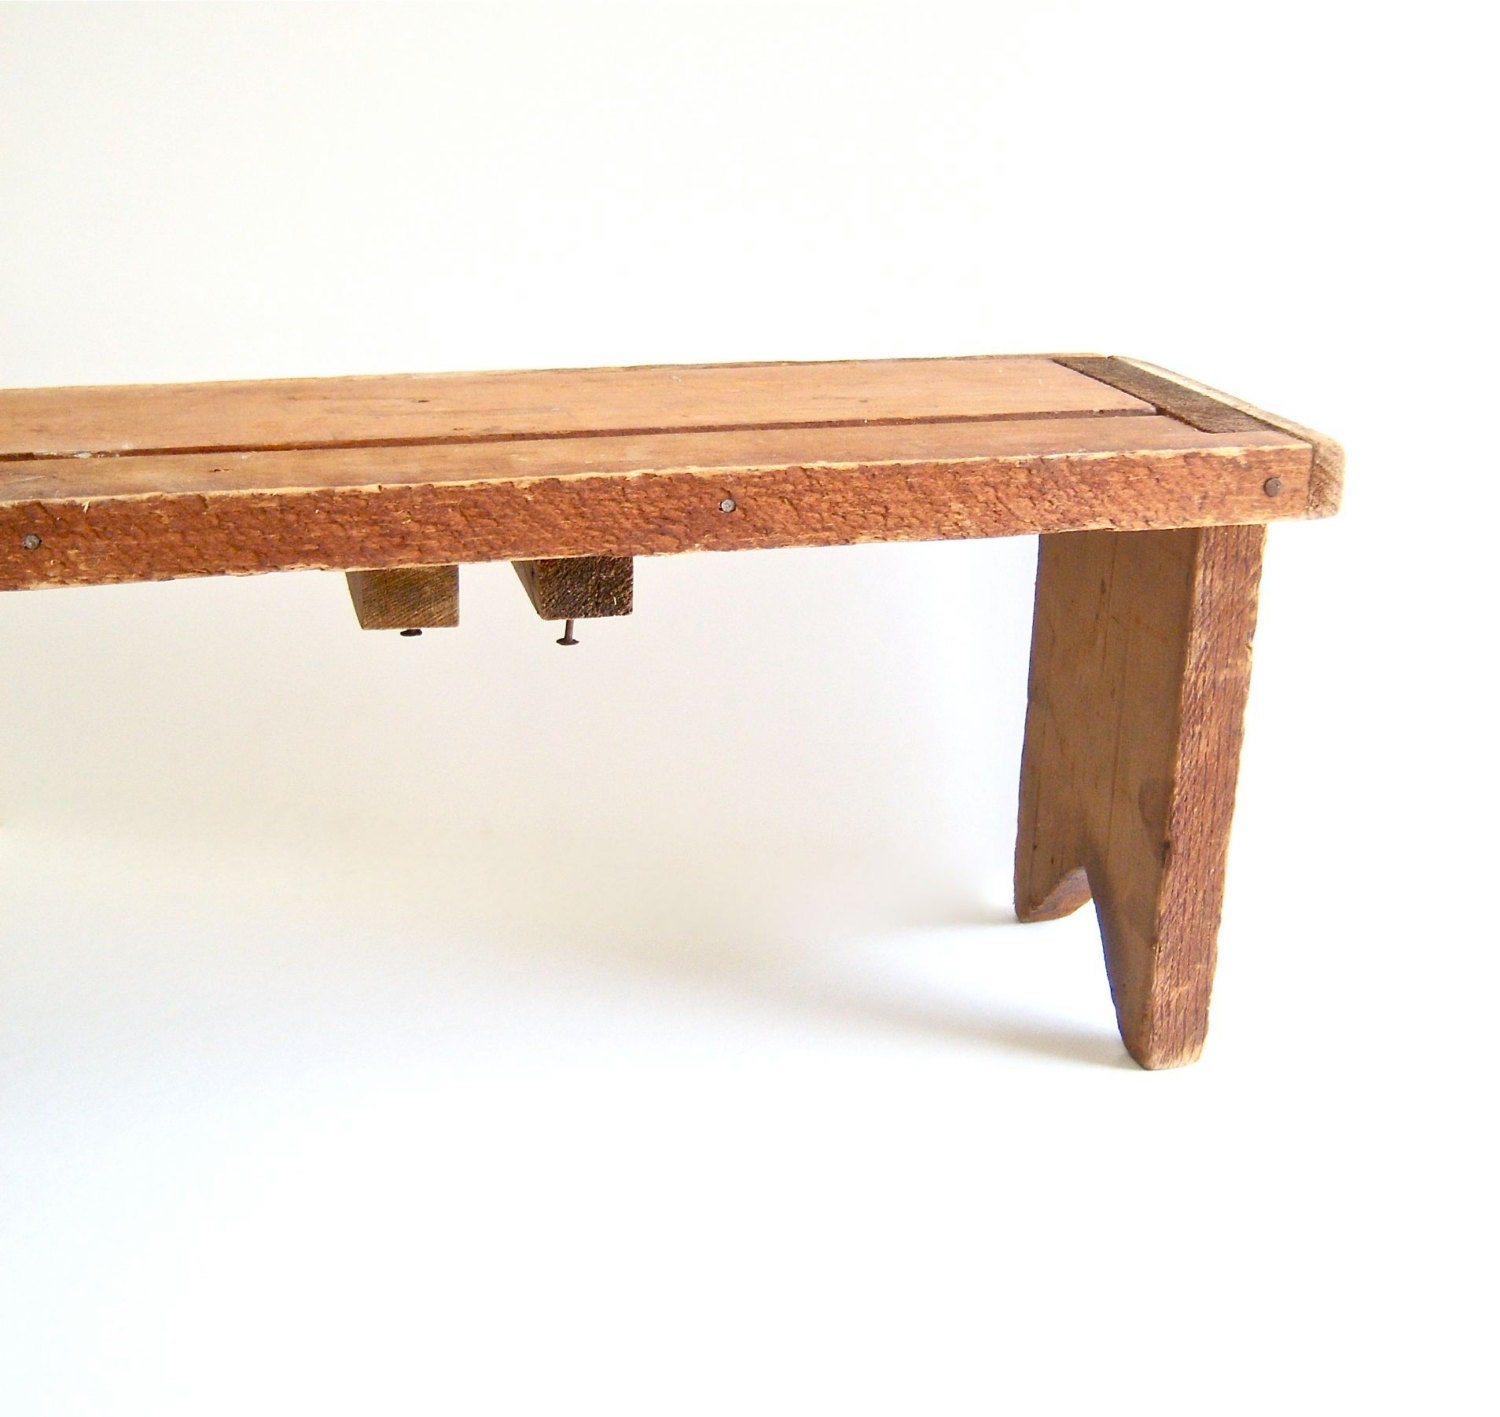 Primitive Wooden Bench Small Step Stool Child Size